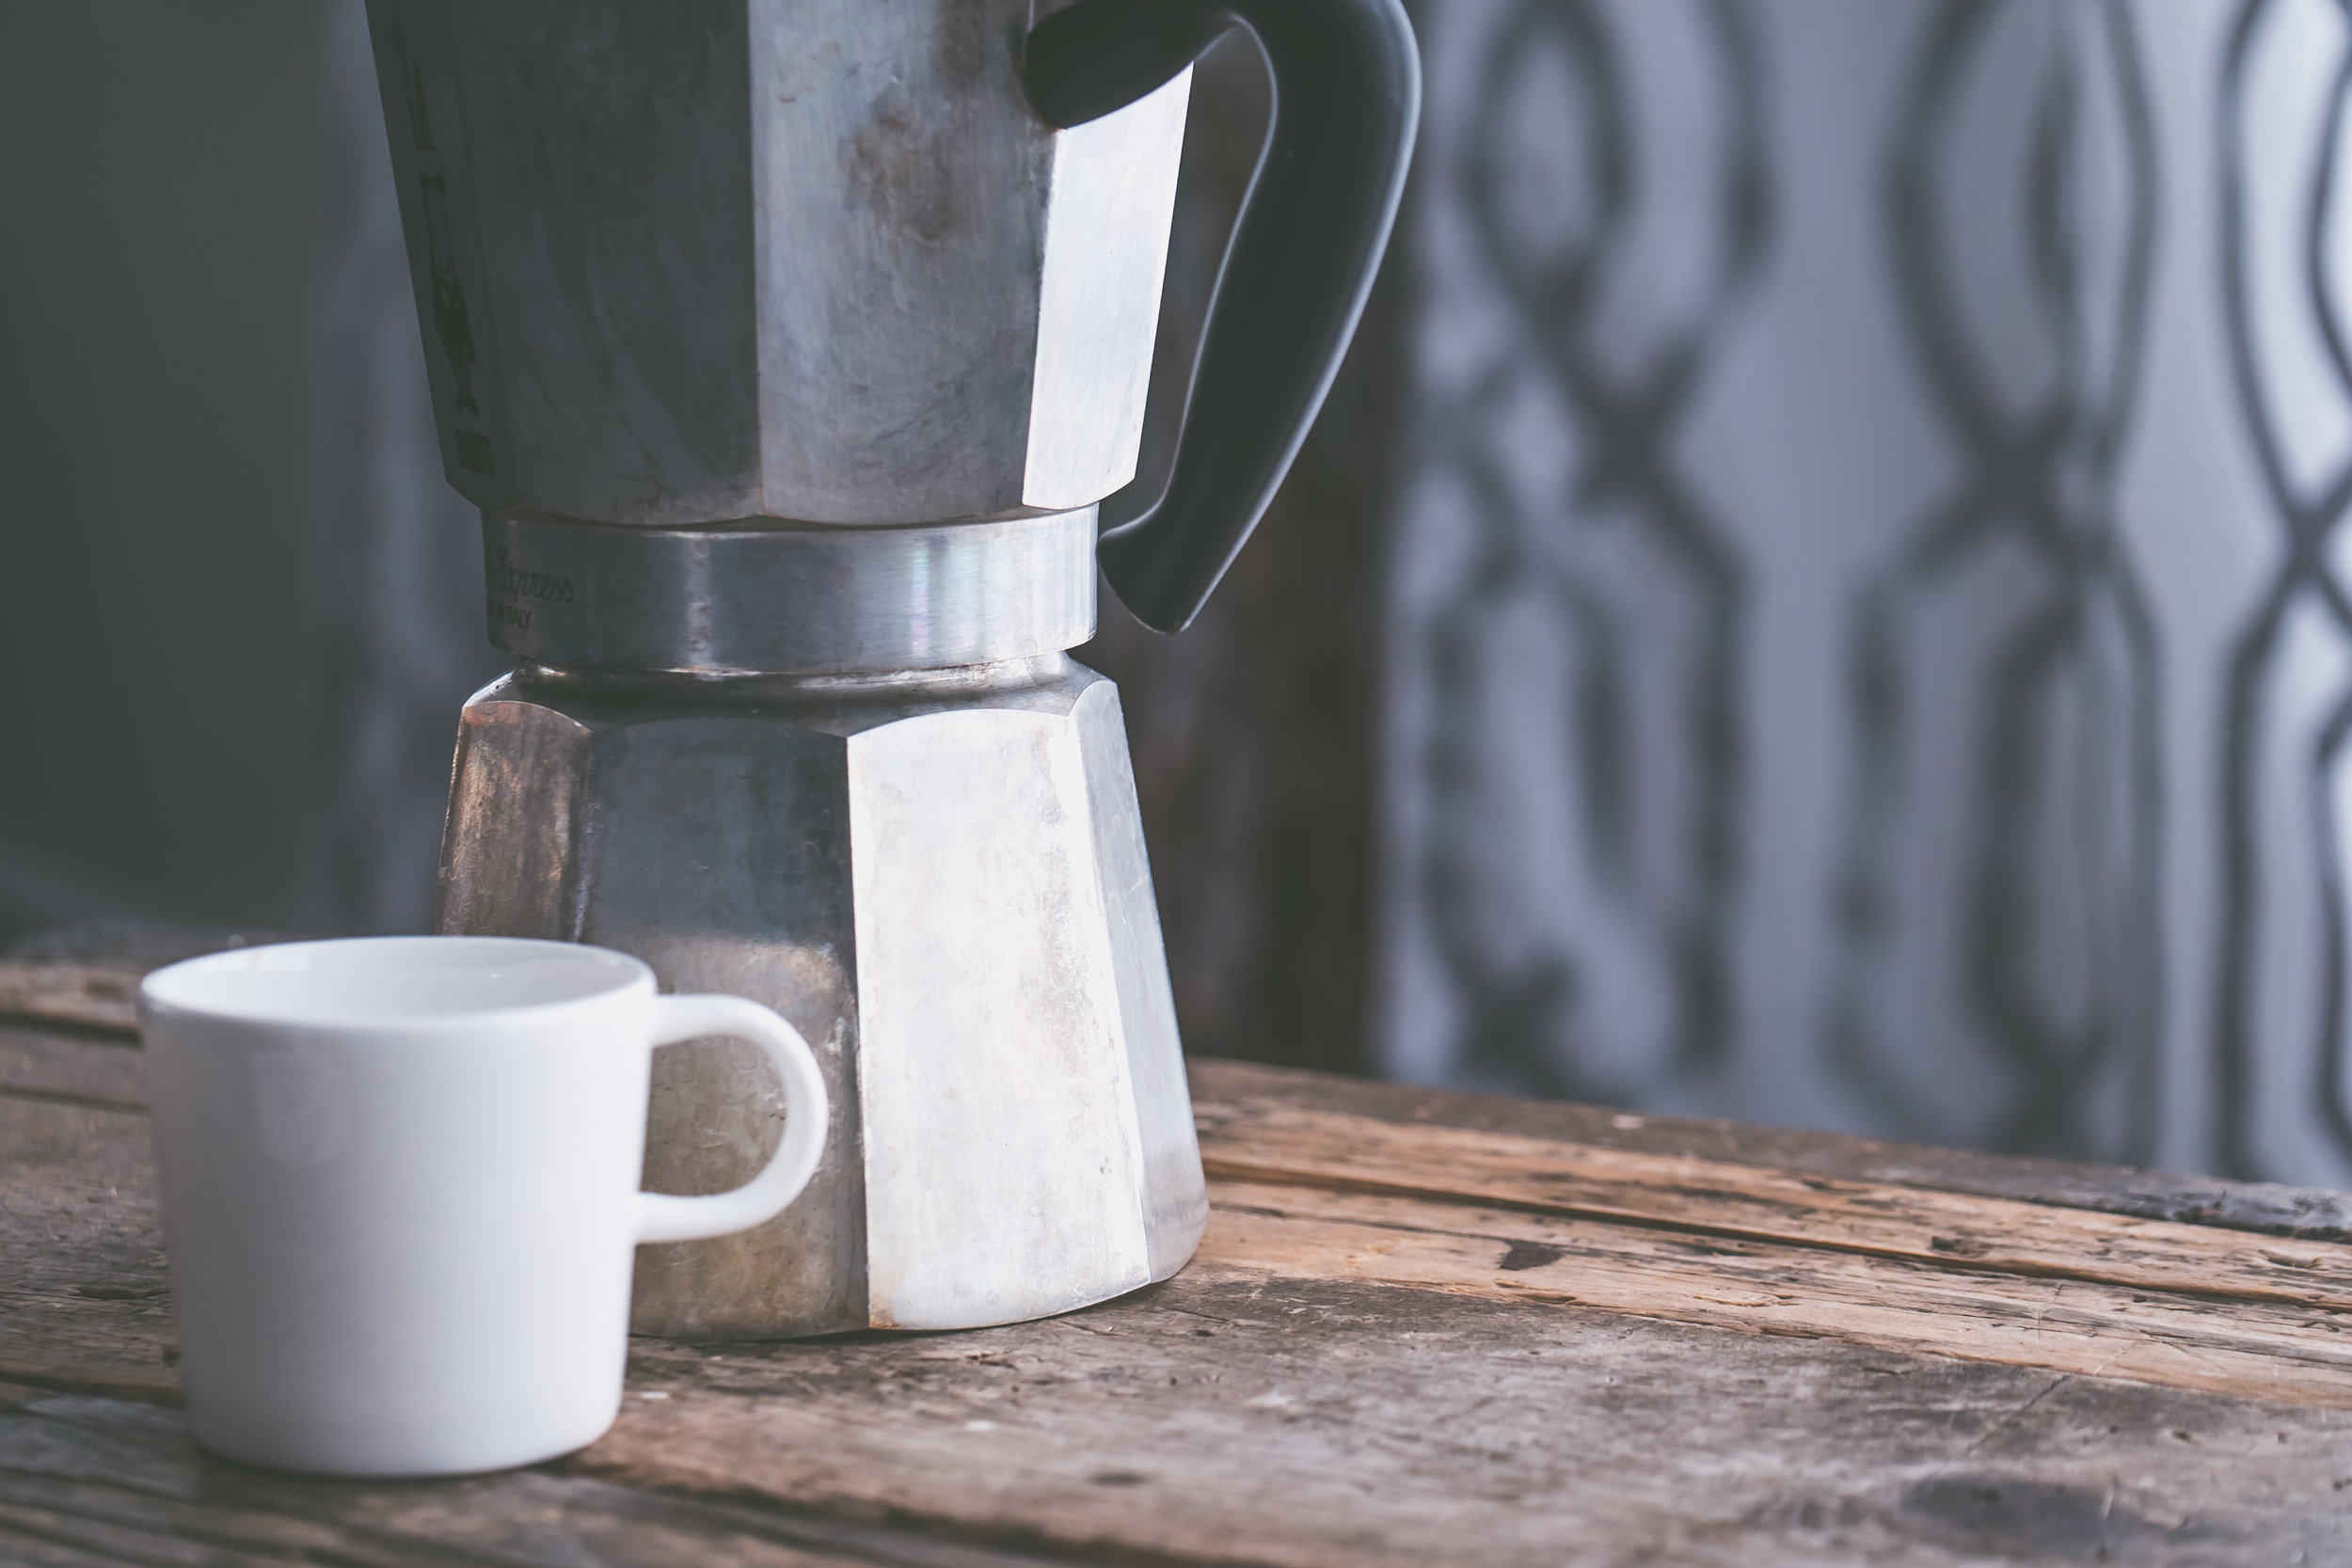 Losing sight of food quality is a problem. Losing sight of coffee quality? Also a problem.